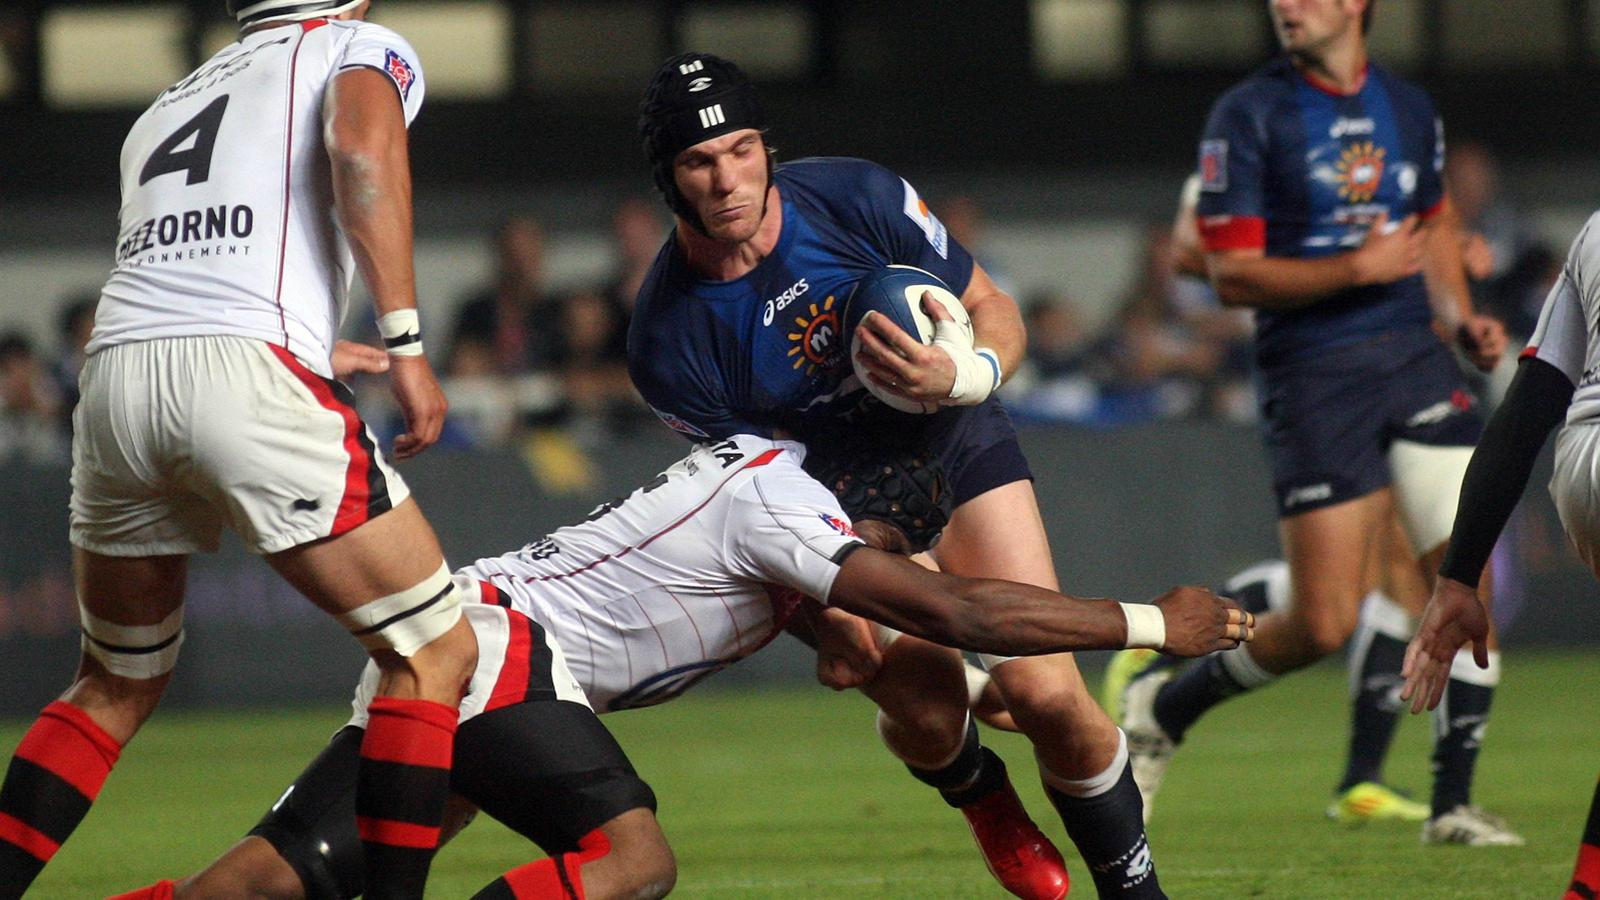 H cup calendrier d voil coupe d 39 europe 2011 2012 rugby rugbyrama - Calendrier coupe europe rugby 2015 ...